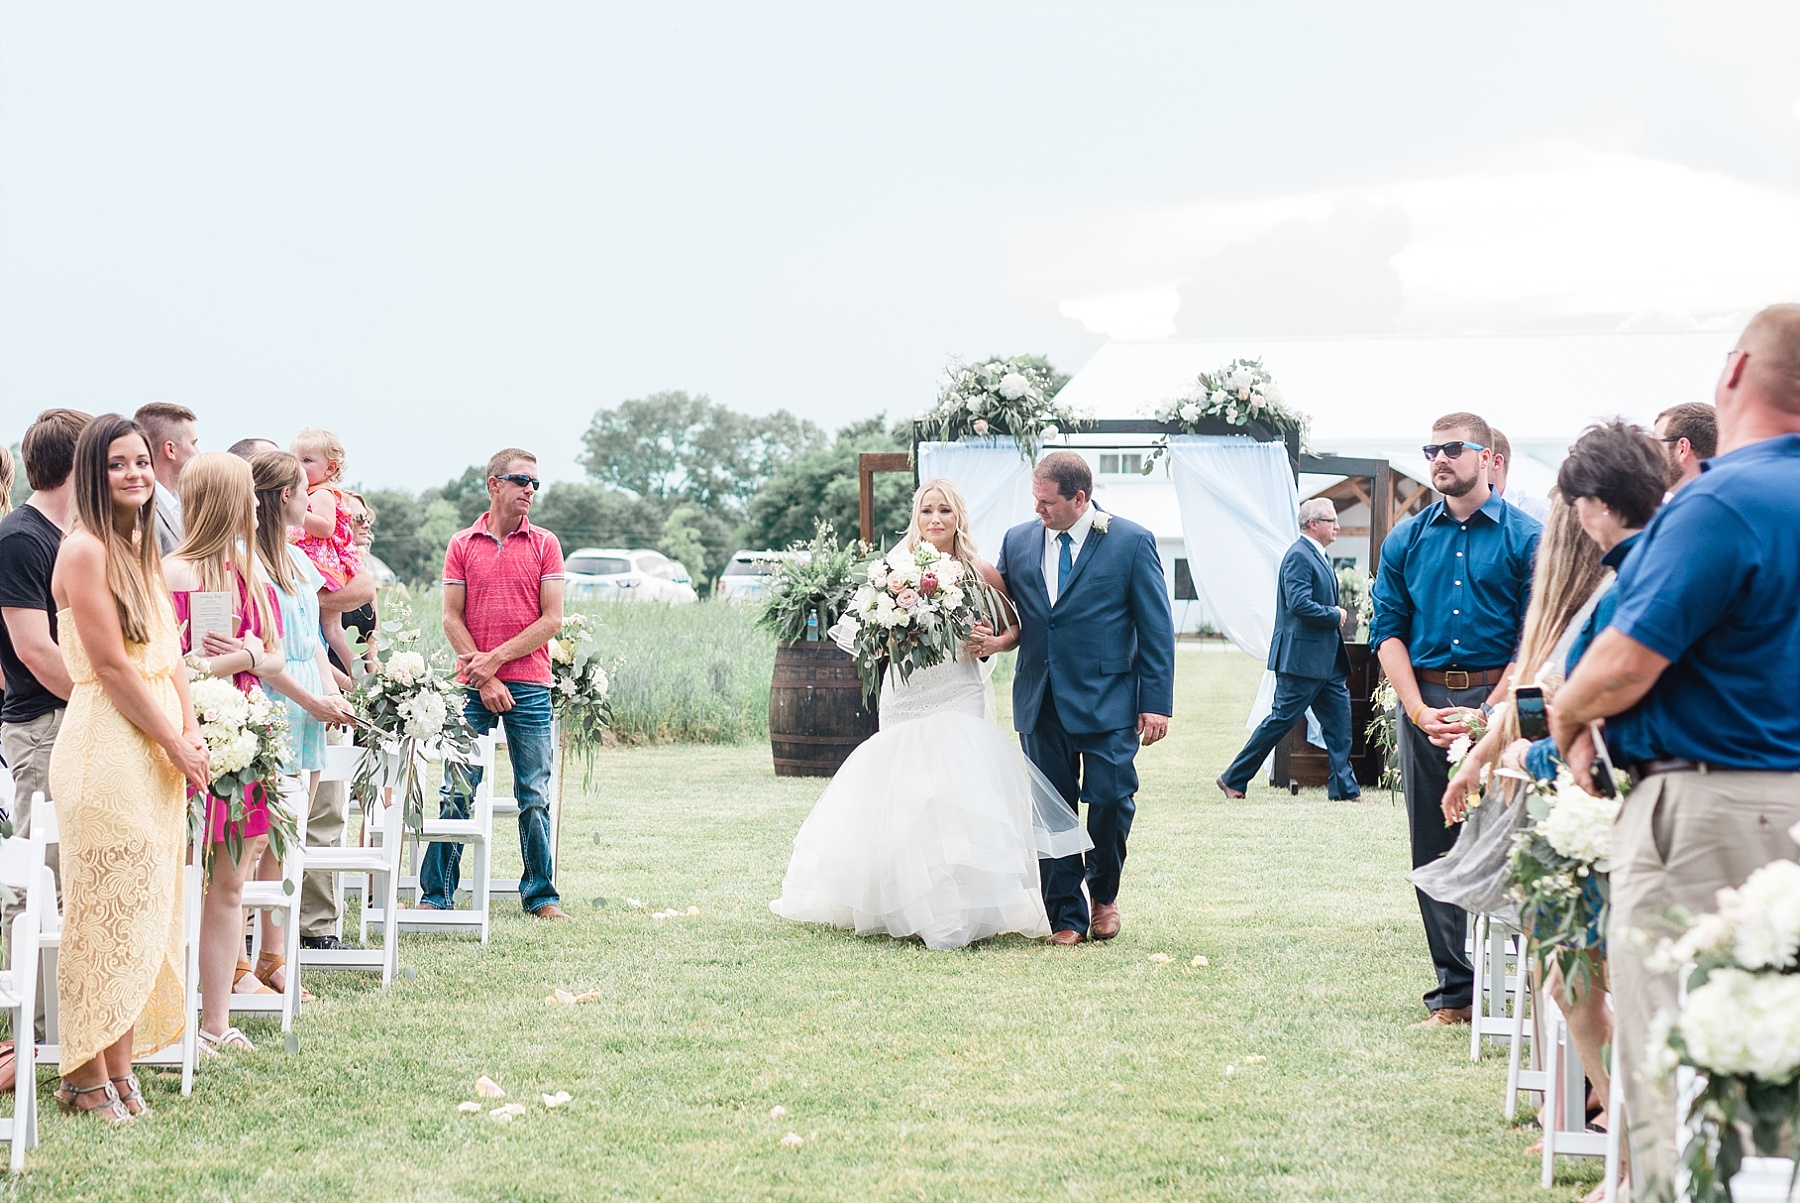 Stunning Heartfelt, Elegant, Fine Art, Chic, Outdoor Spring Wedding with Blush, Cream, Greenery, Rose Gold, and Sequins at Emerson Fields Venue by Kelsi Kliethermes Photography_0047.jpg